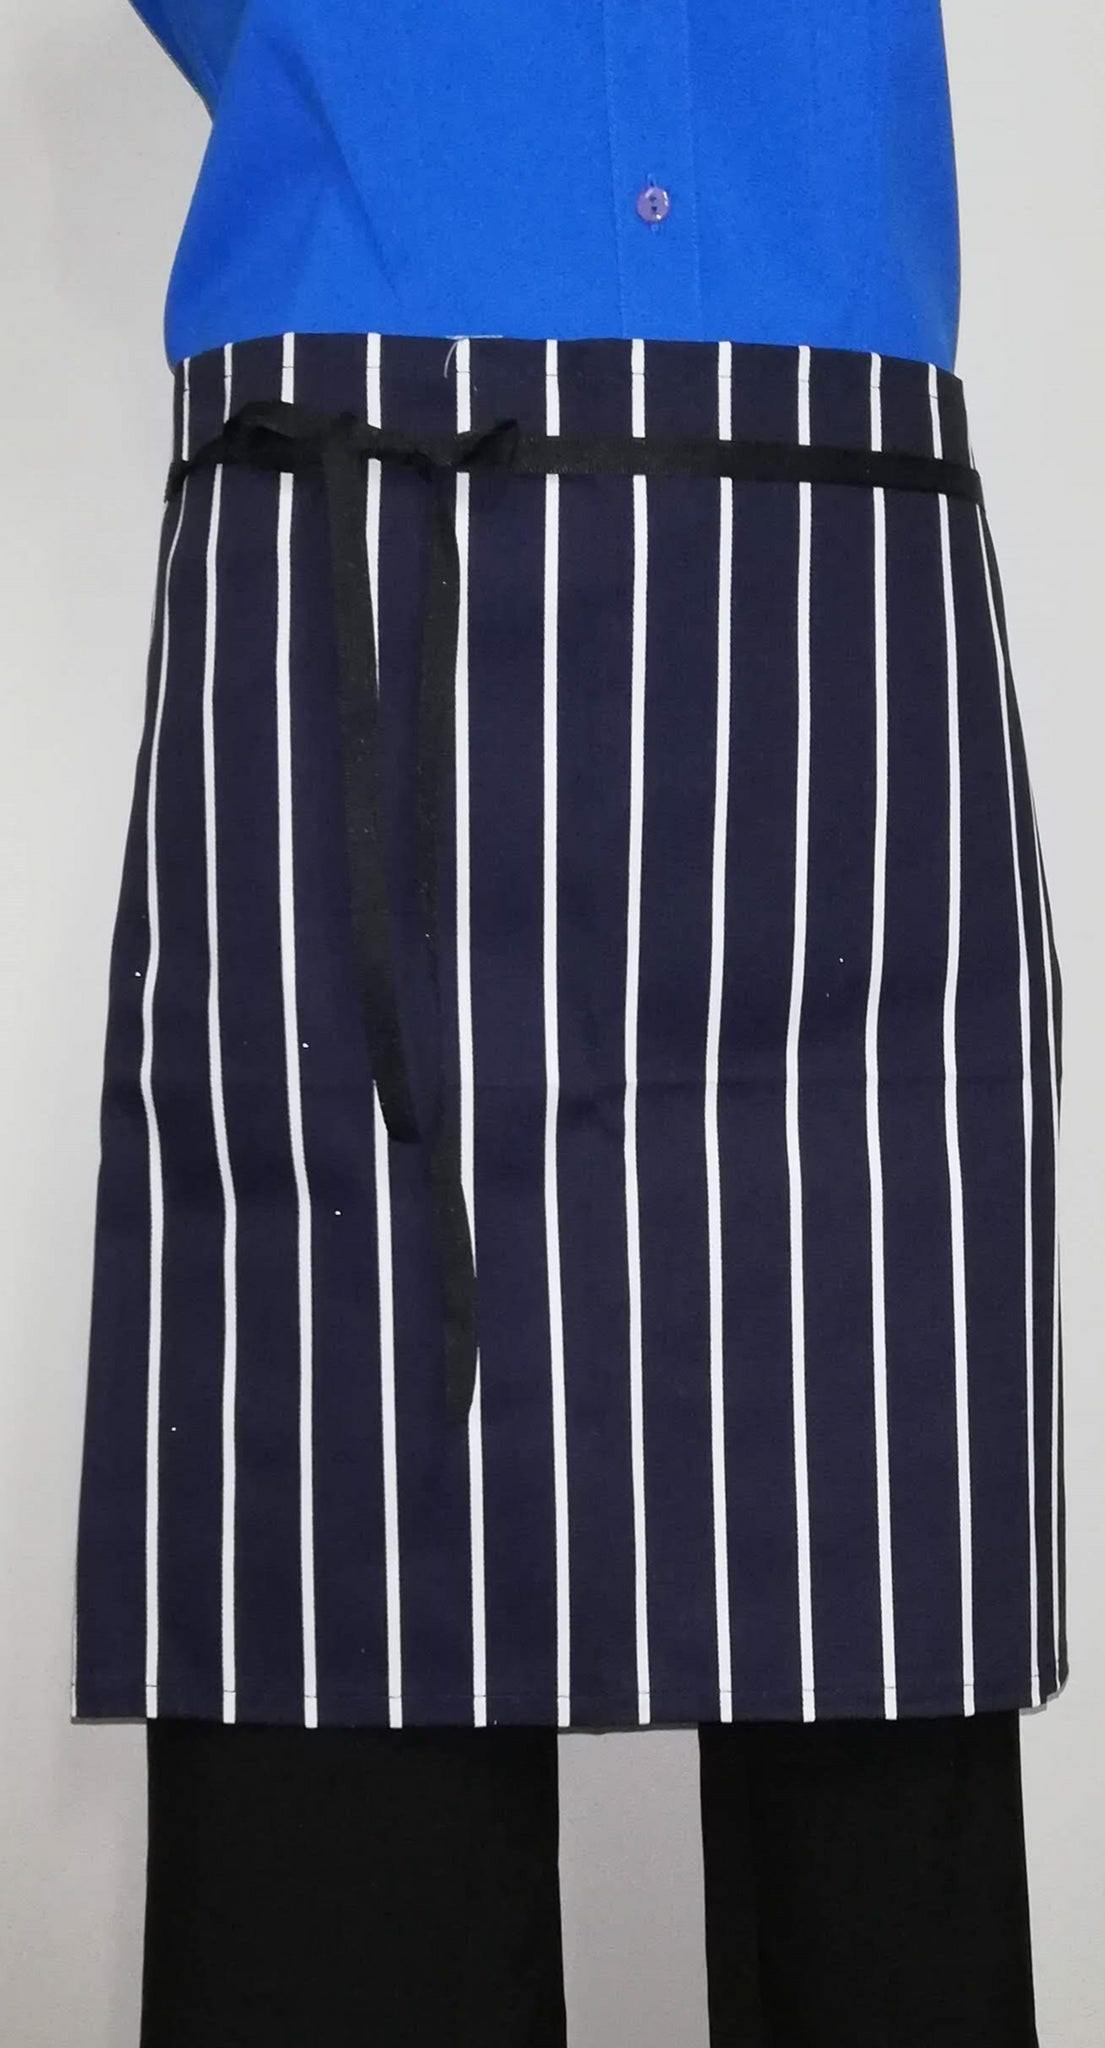 AJ03 Short Half Apron - Navy/White Stripe